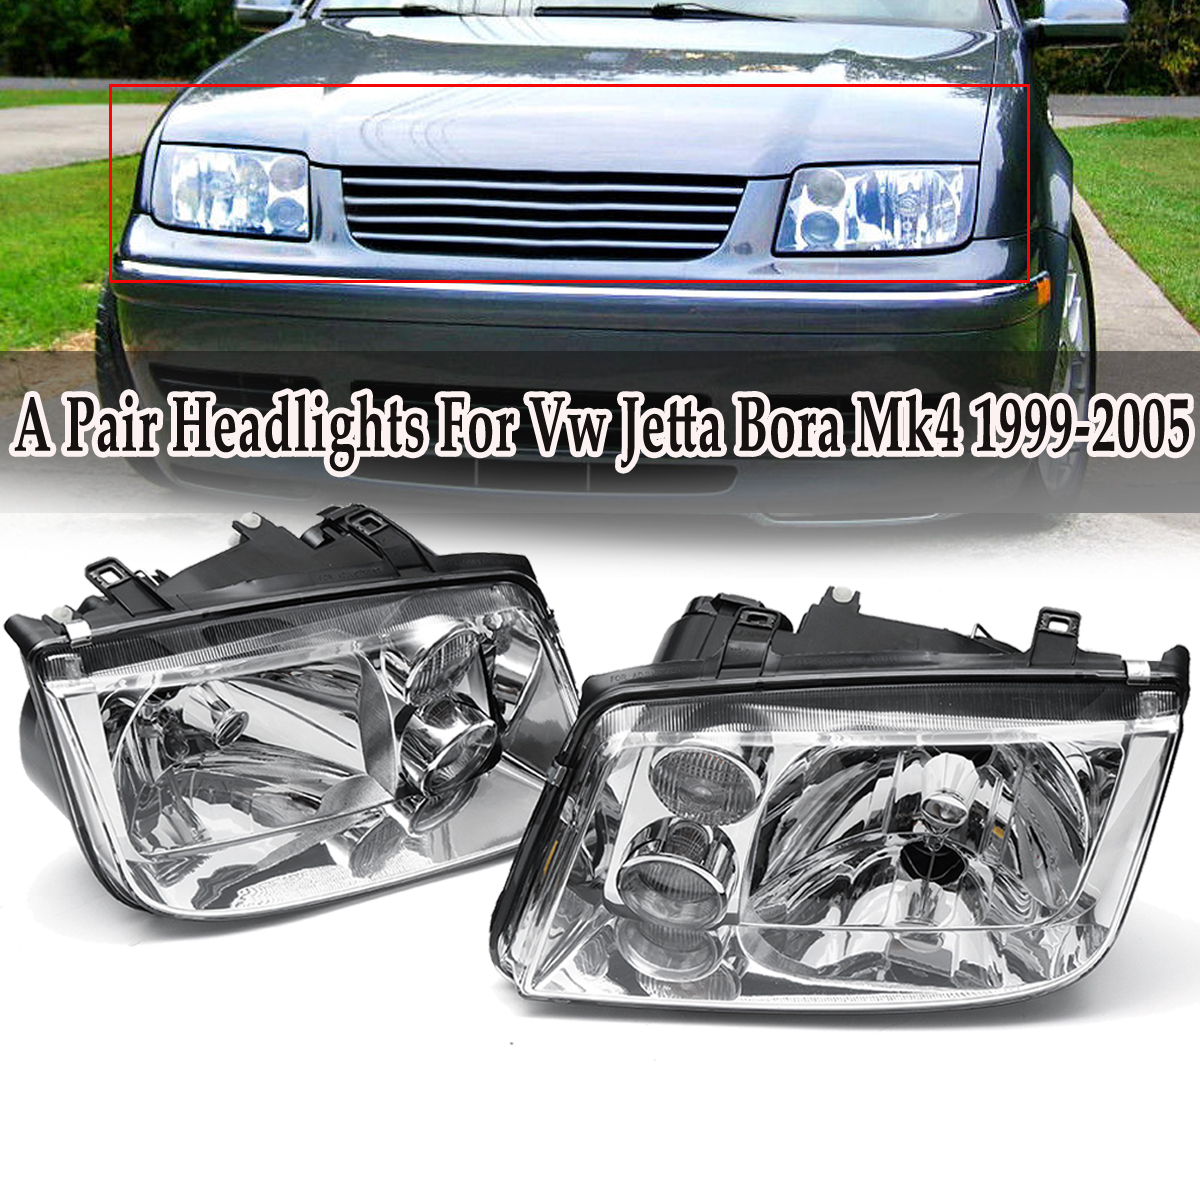 1 Pair Car Headlights Built In Fog Lamp Left + Right for Volkswagen for Vw Jetta Bora Mk4 1999-2005 new 1 pair car left